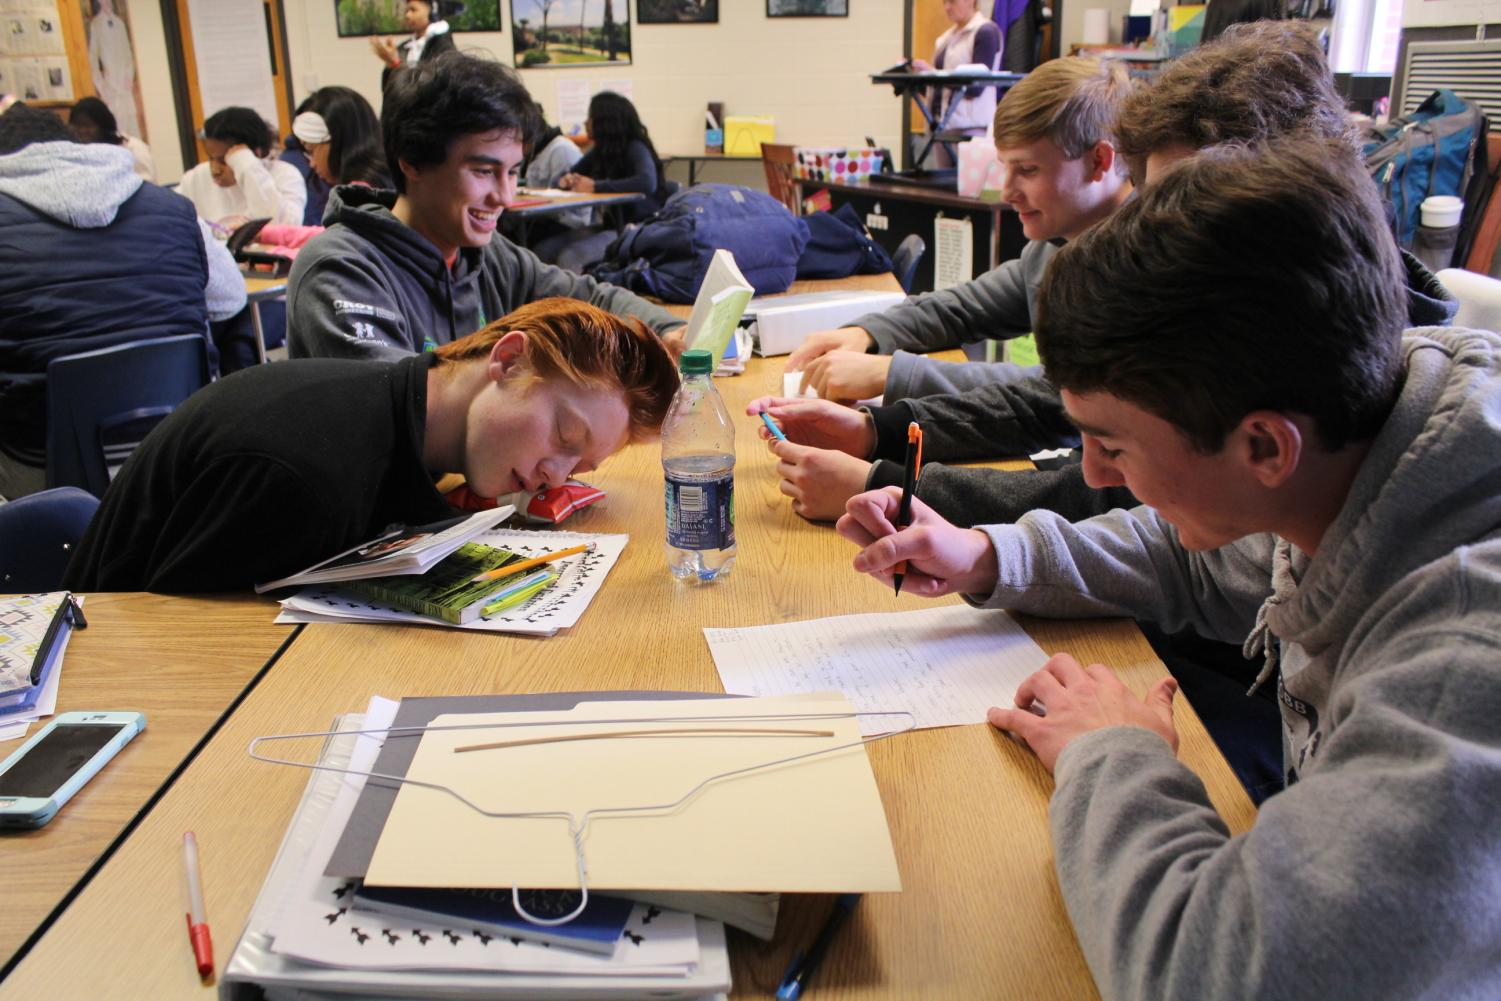 """Confusion and excitement sent Mrs. Lawson's Honors American Lit class abuzz as she gave students a project to complete—except with a twist—no clear instructions, an abstract objective, and complete silence when students asked her confused questions. Students received a manila folder of supplies to construct the purpose of the project. """"We picked up a manila folder with a coat hanger, string, a stick, an index card, black construction paper, and a notecard. All we know is that we have to relate the project back to the unit: Individuals Taking a Stand,"""" junior Aiden Minard said. Though abstract in concept, the project pushed students past their creative boundaries. """"This project delves into our creativity by making us think more creatively and to better understand the theme of this unit,"""" junior Patrick Moran said."""